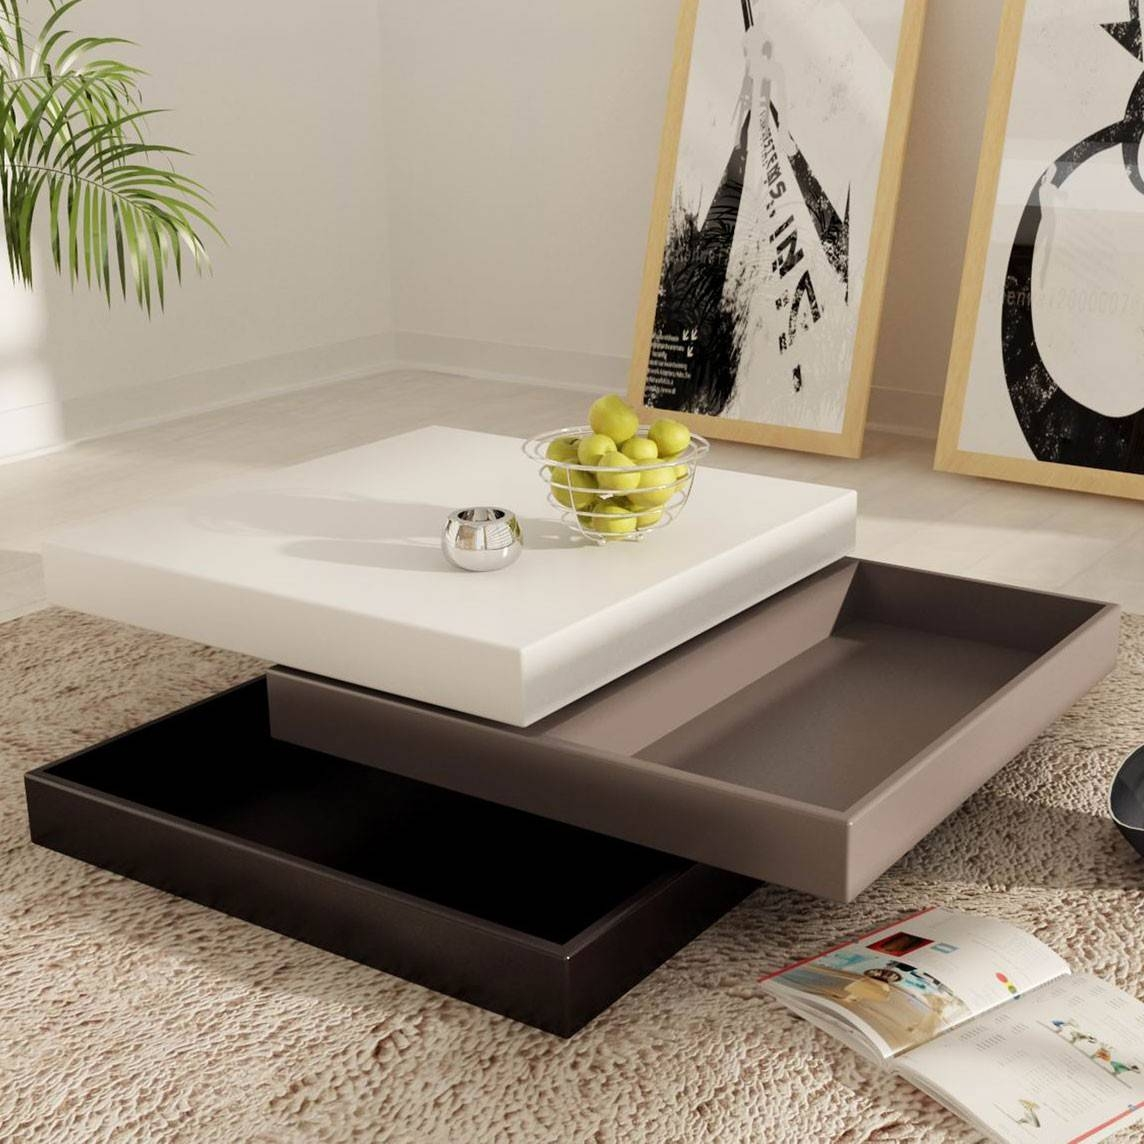 Square Farmhouse Coffee Tables   Functional Square Coffee Tables In Cream  Coffee Tables With Drawers (